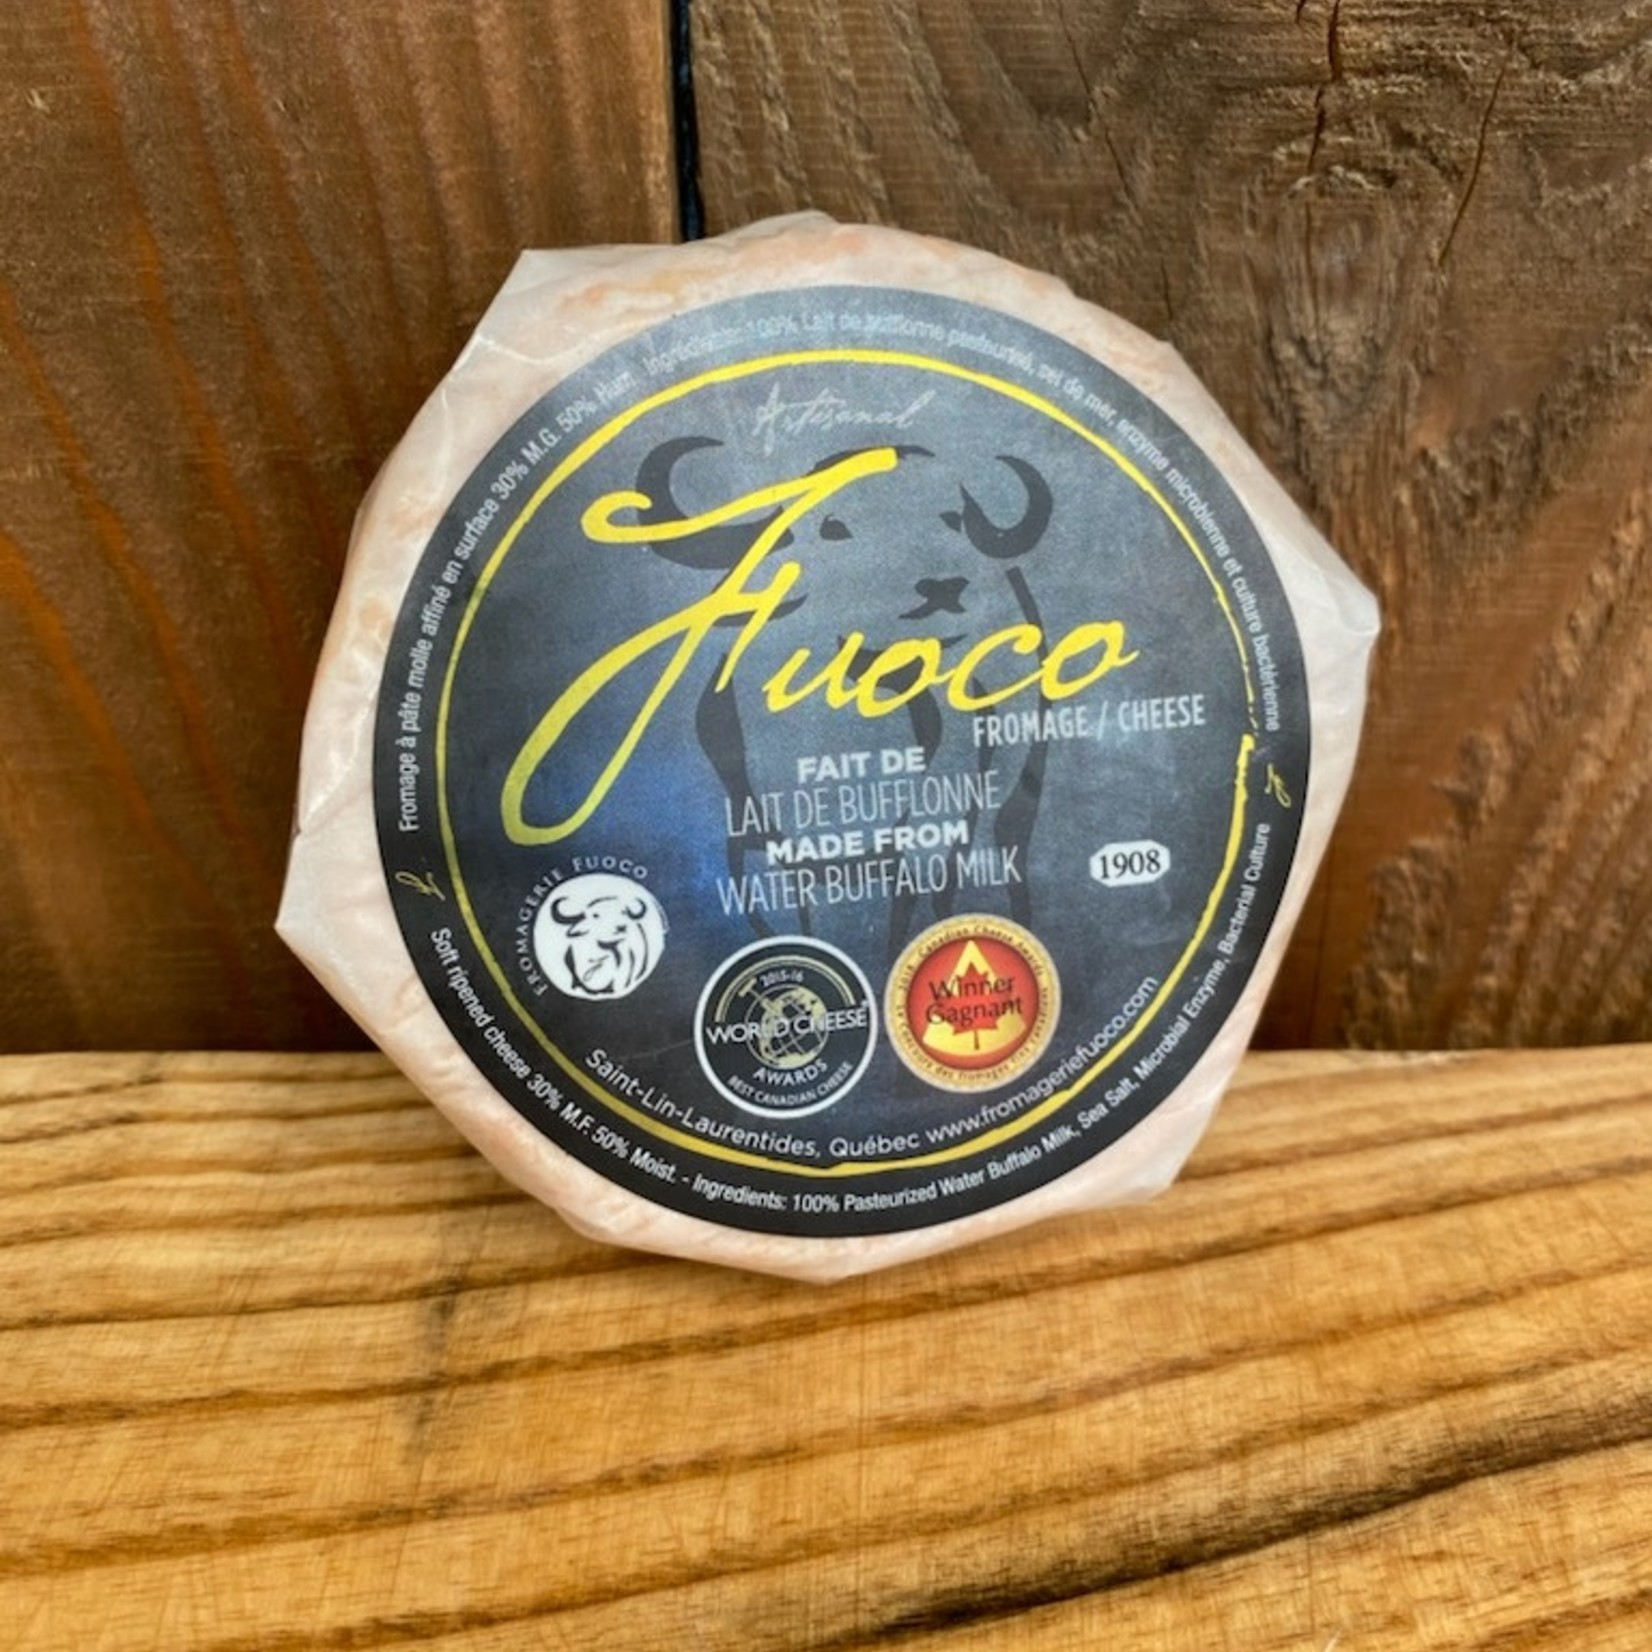 Fromage - Fuoco (125g)